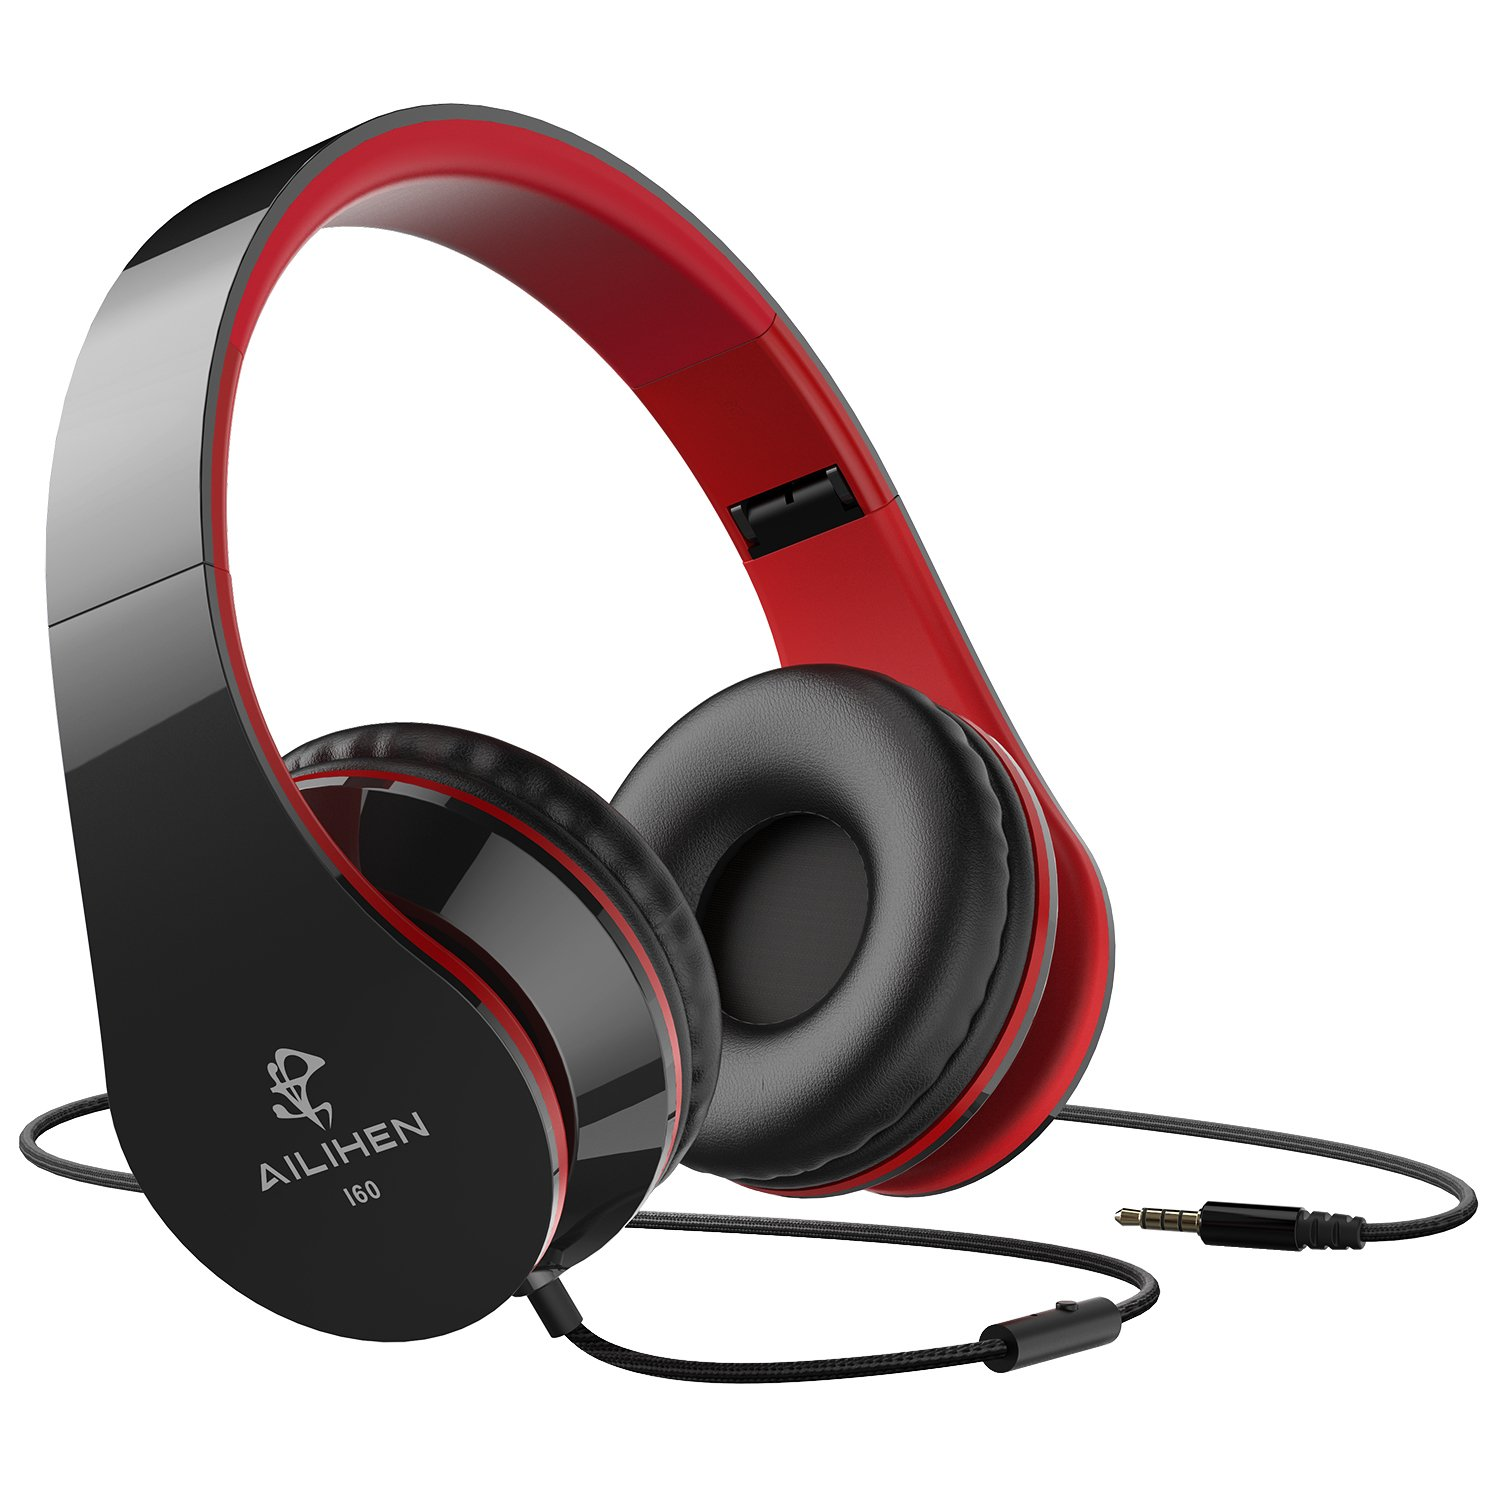 AILIHEN Wired Headphones with Microphone for Smartphones (Black Red) by AILIHEN